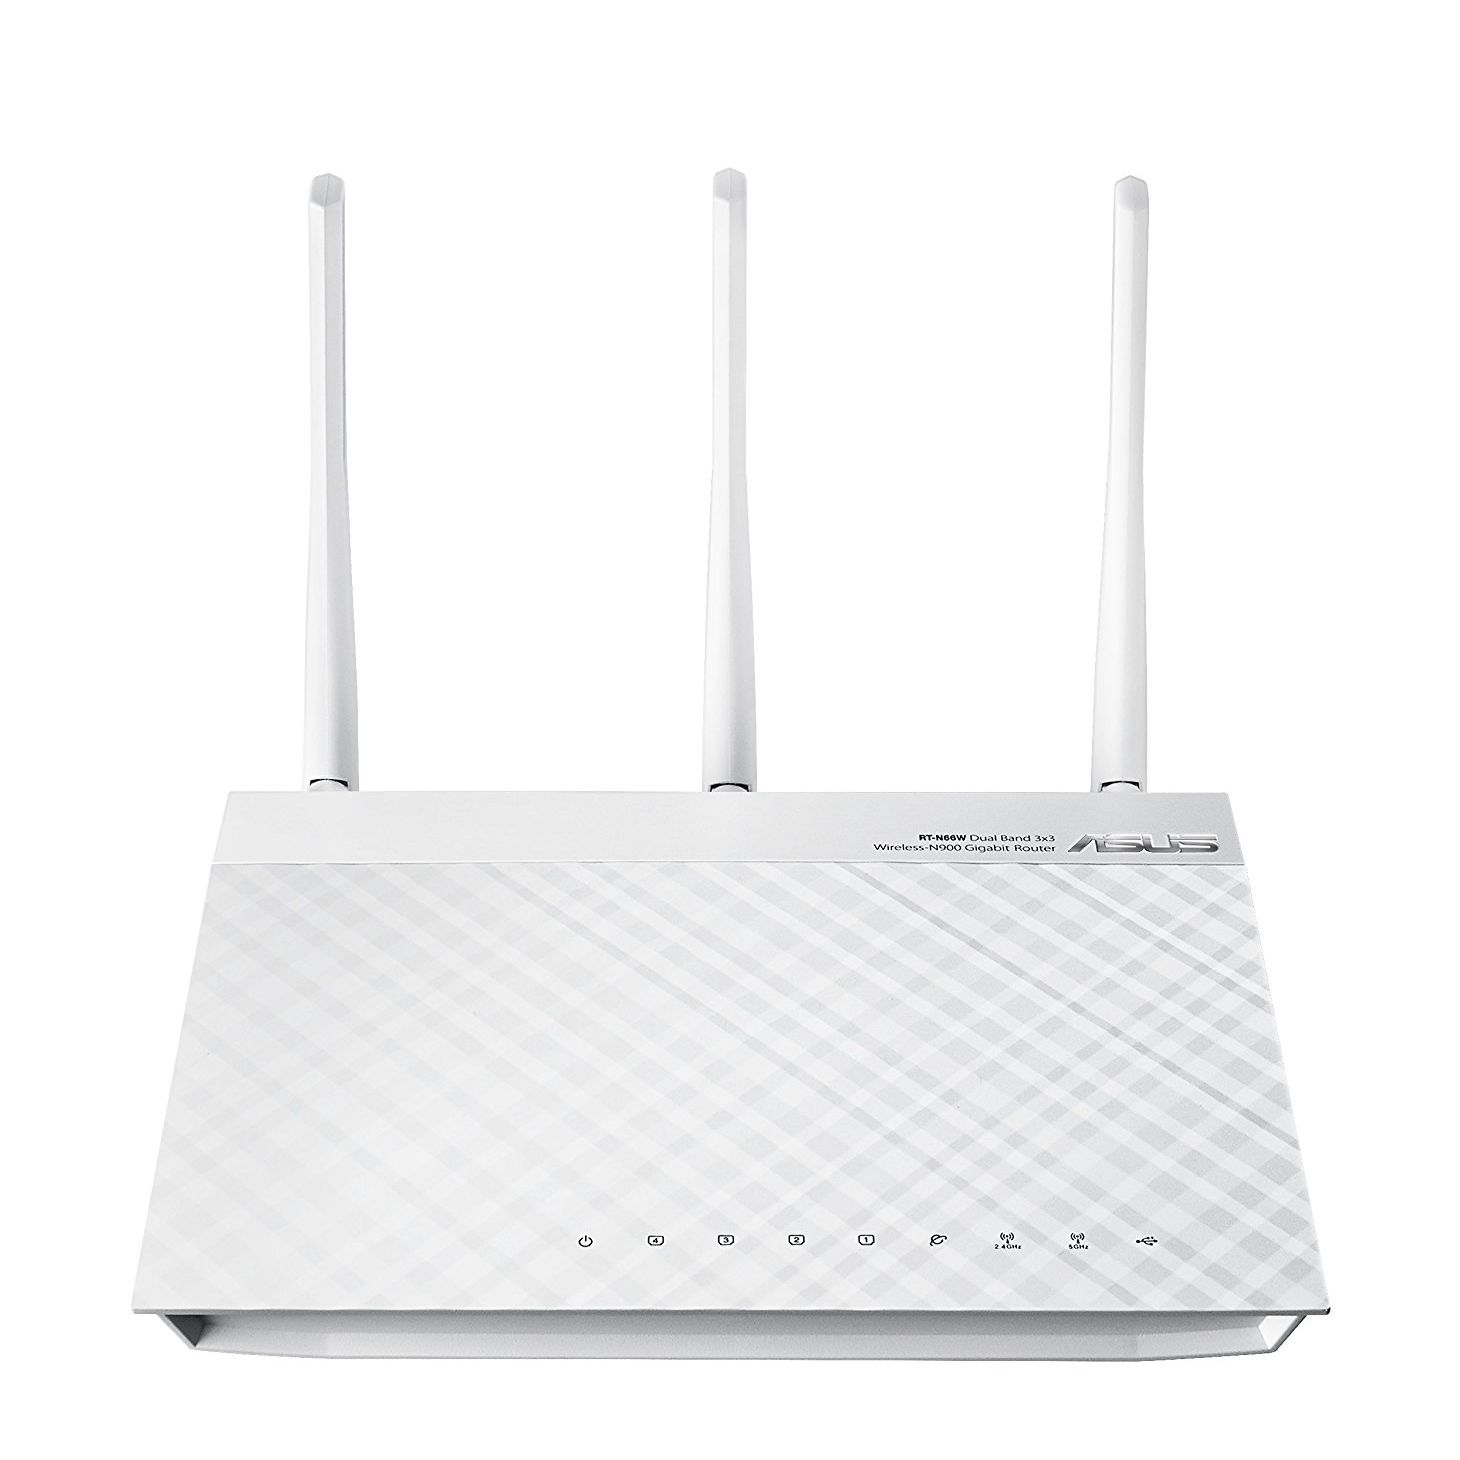 The 8 Best 80211n Routers For 2018 Linksys E2500 Ap N600 Dual Band Wireless Router Asus Rt N66u